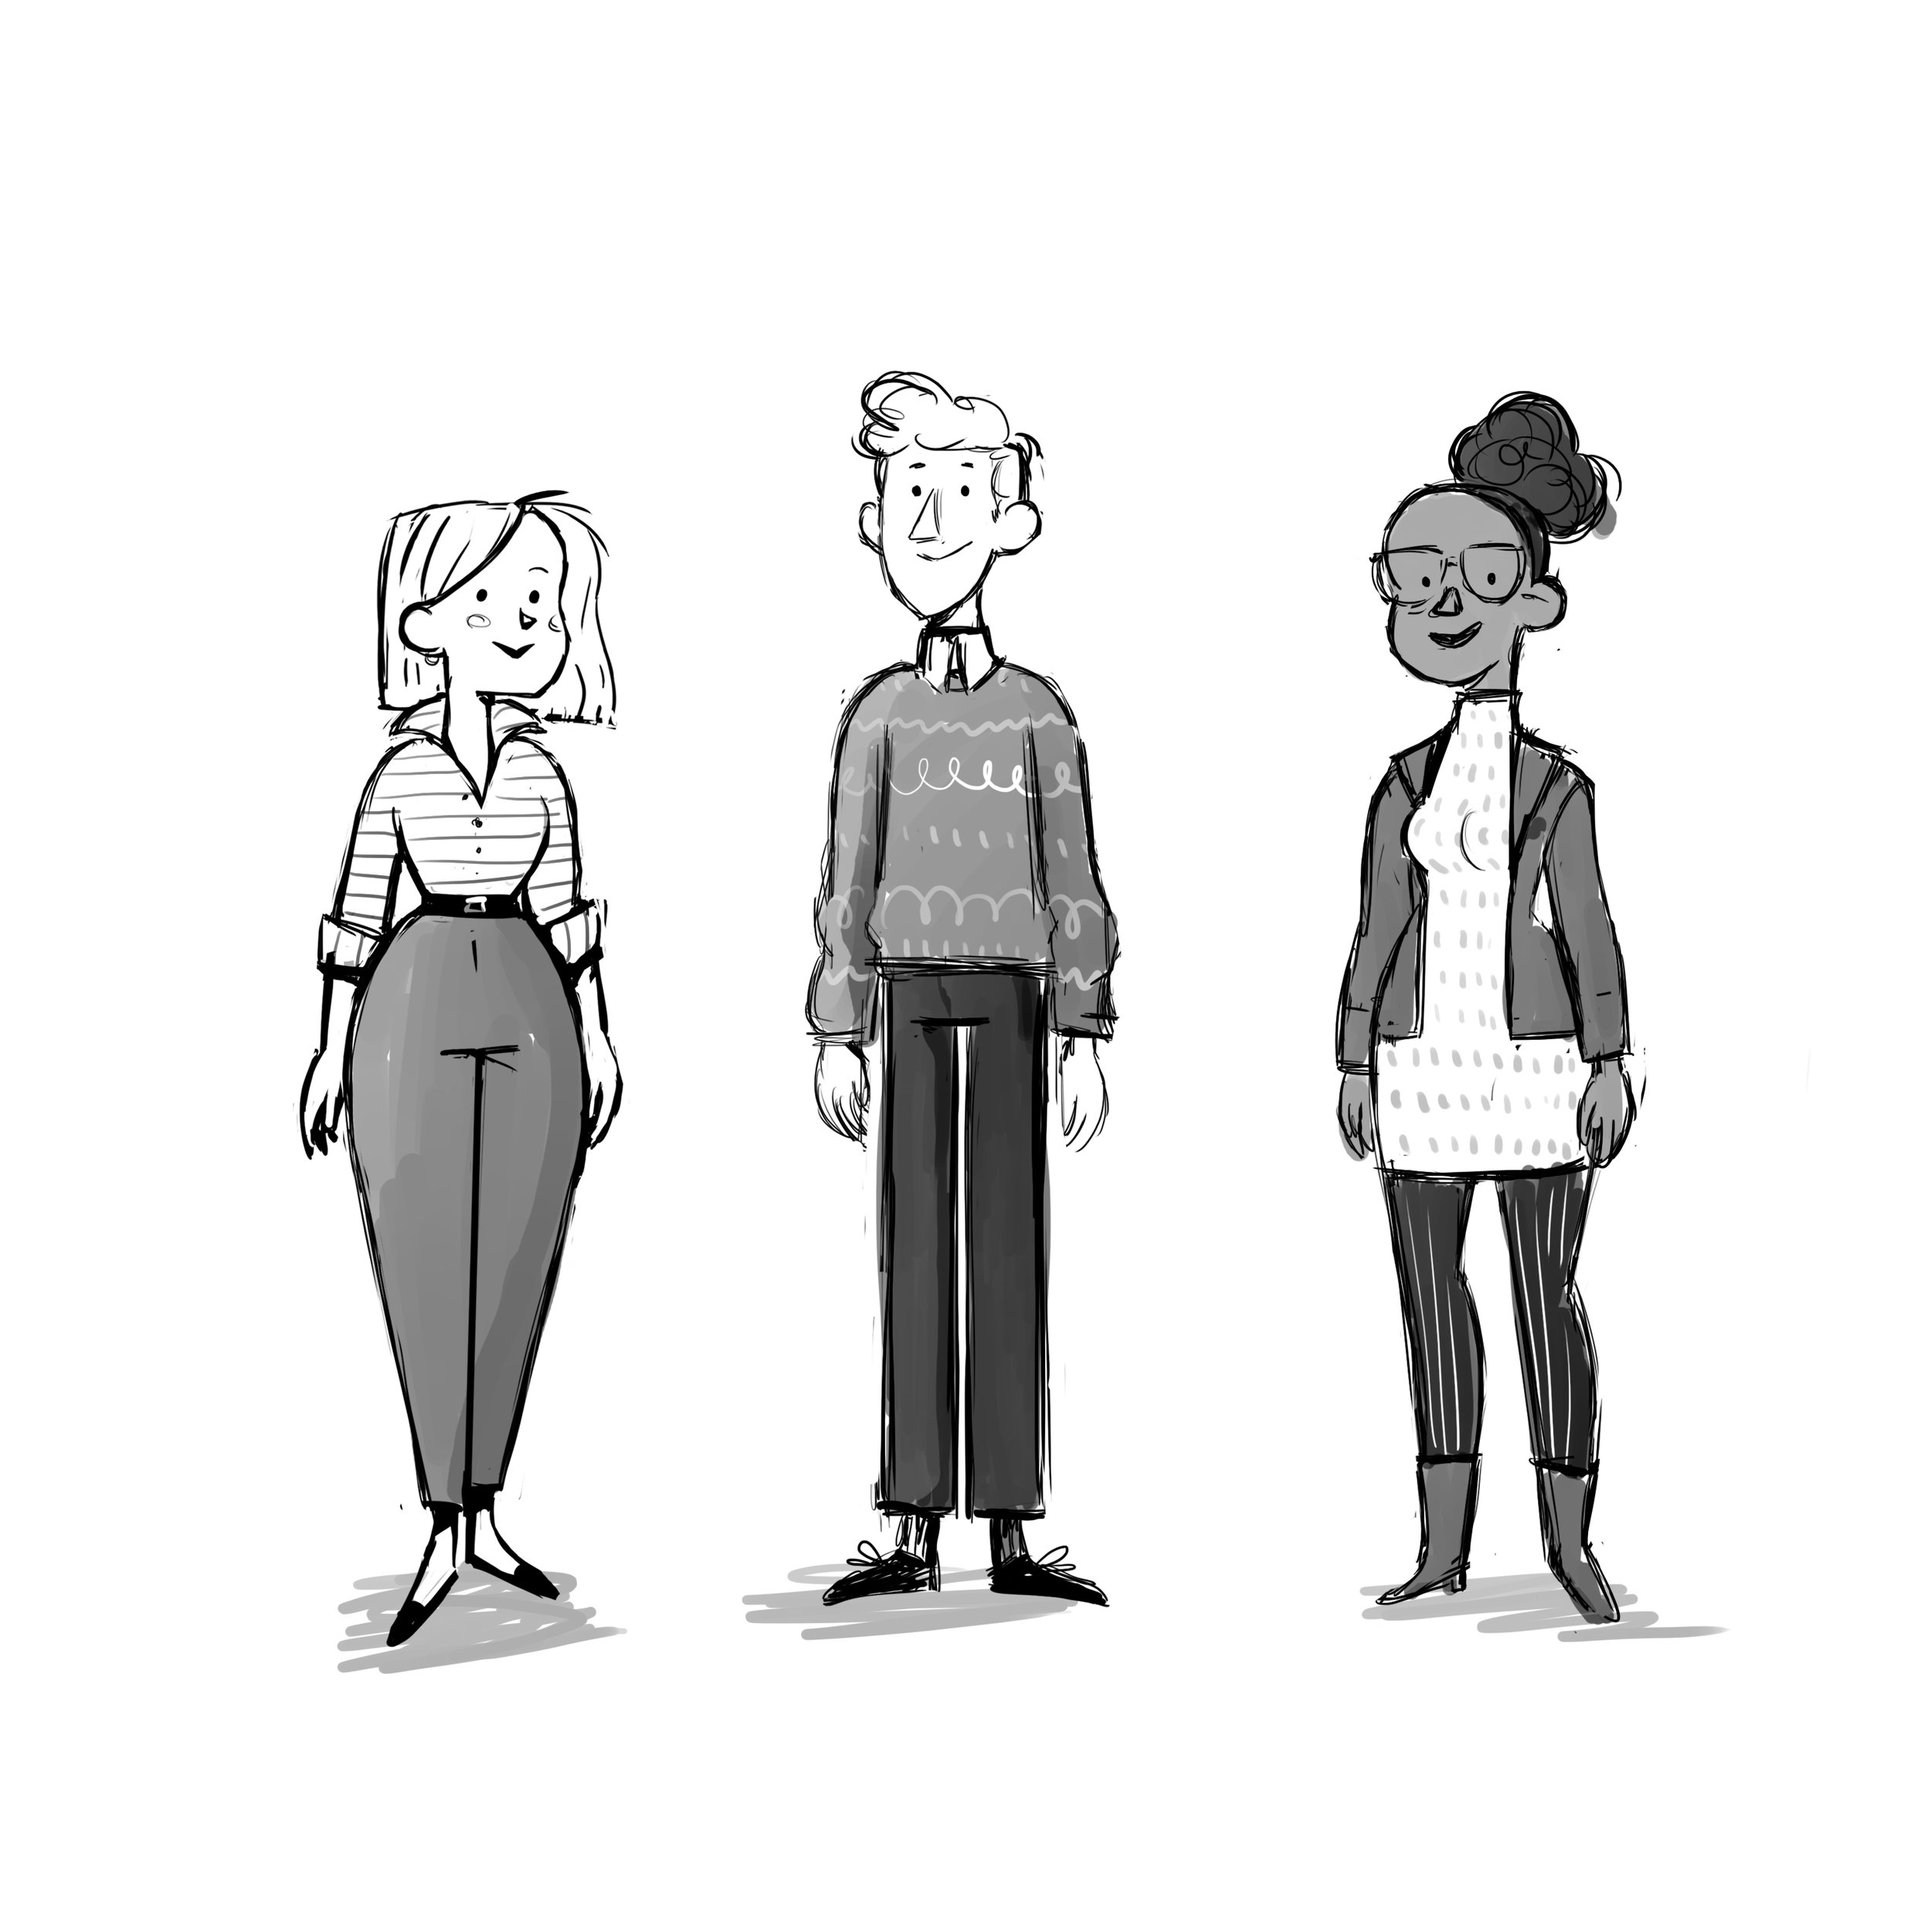 More character designs for Tinmouse.